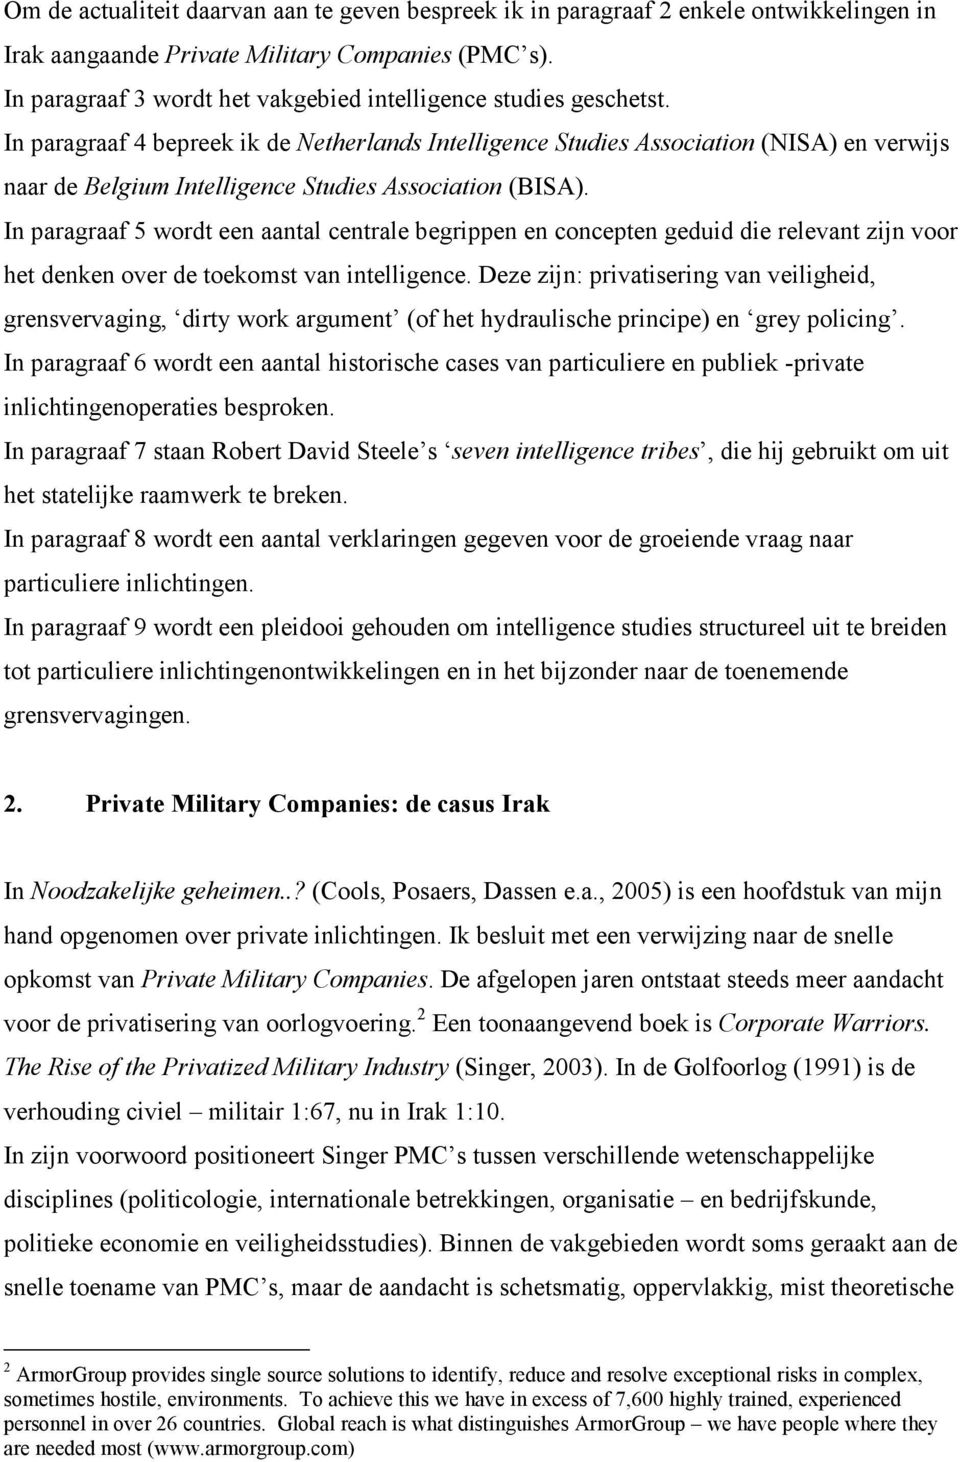 In paragraaf 4 bepreek ik de Netherlands Intelligence Studies Association (NISA) en verwijs naar de Belgium Intelligence Studies Association (BISA).